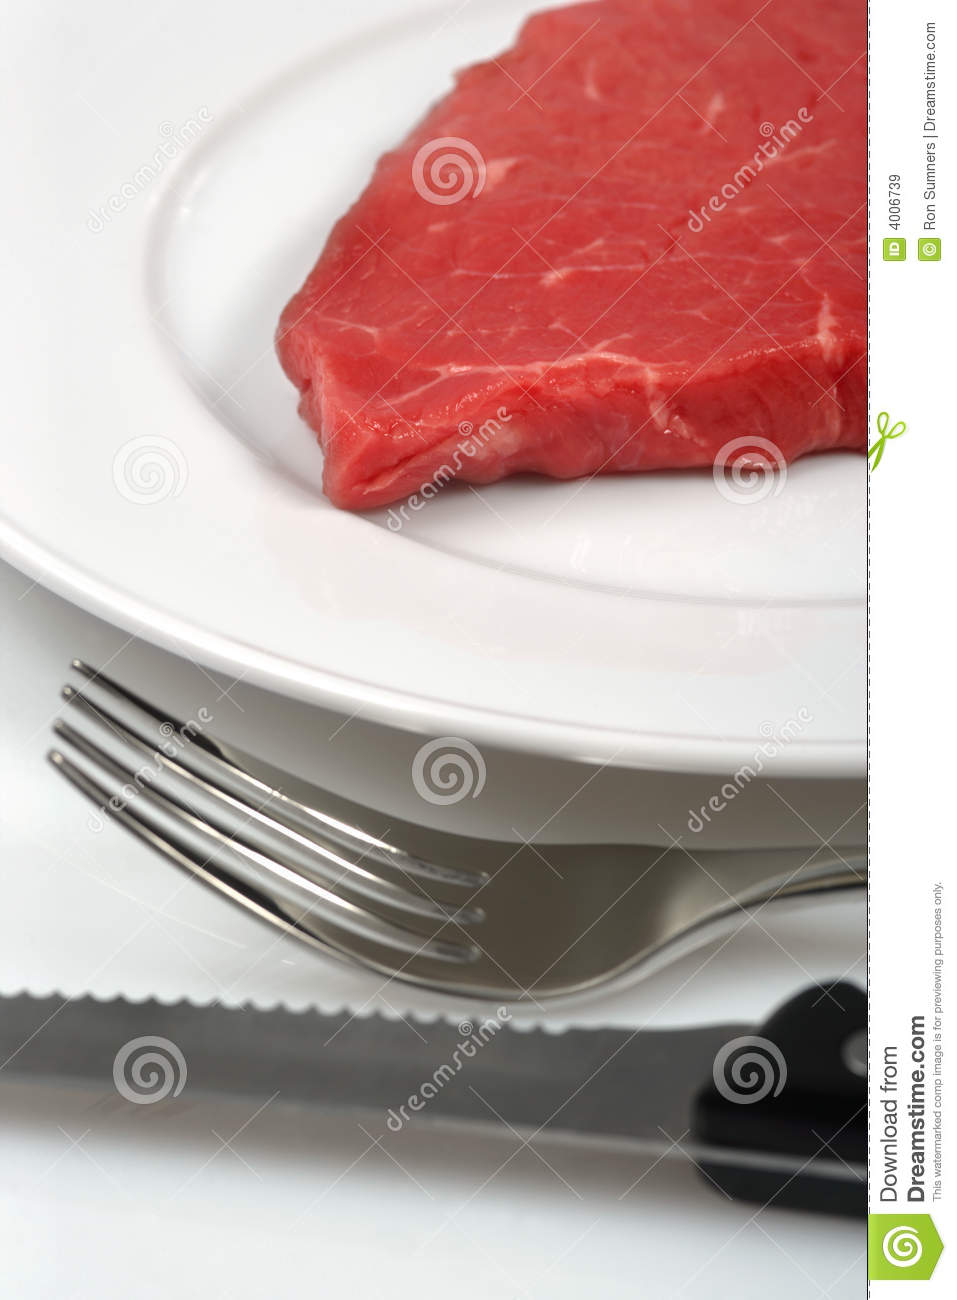 Meat eater youtube